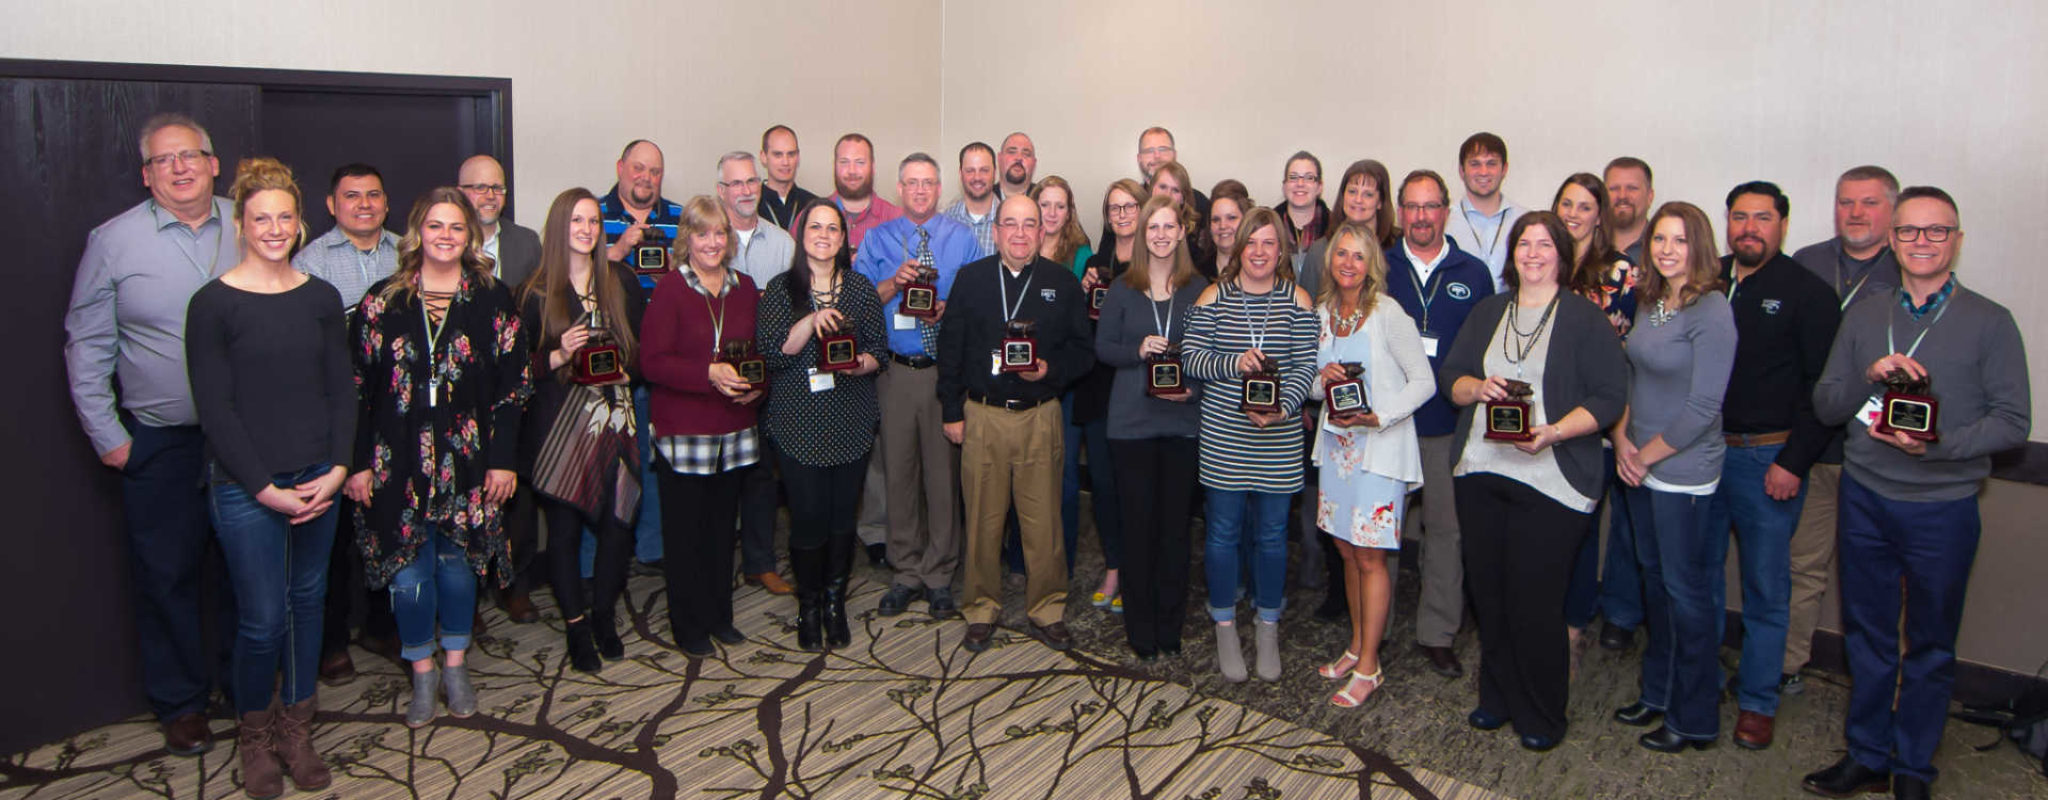 Christensen Farms hosts its 4th annual organizational awards event